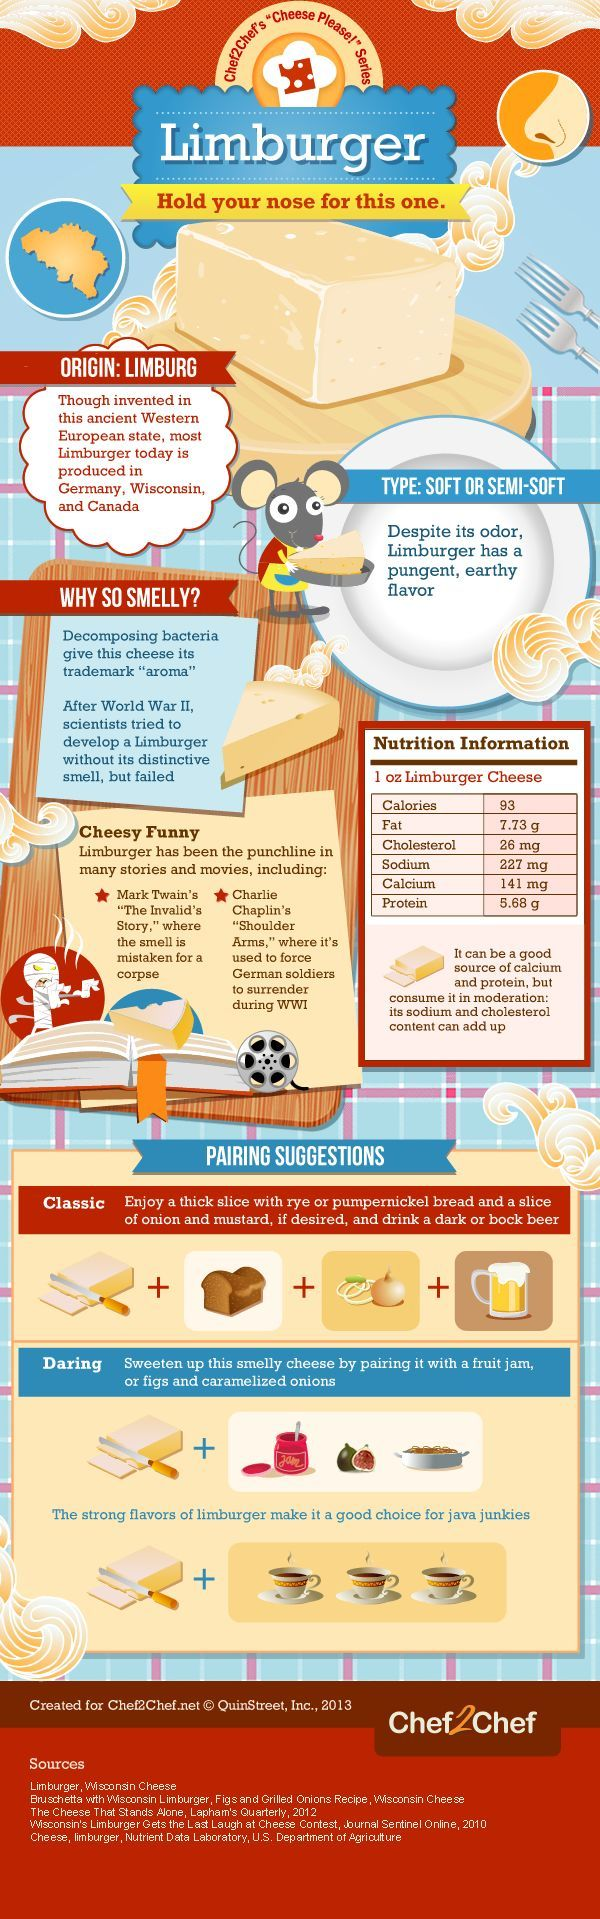 In the latest installment of their cheese series, here's an infographic about one stinky cheese!